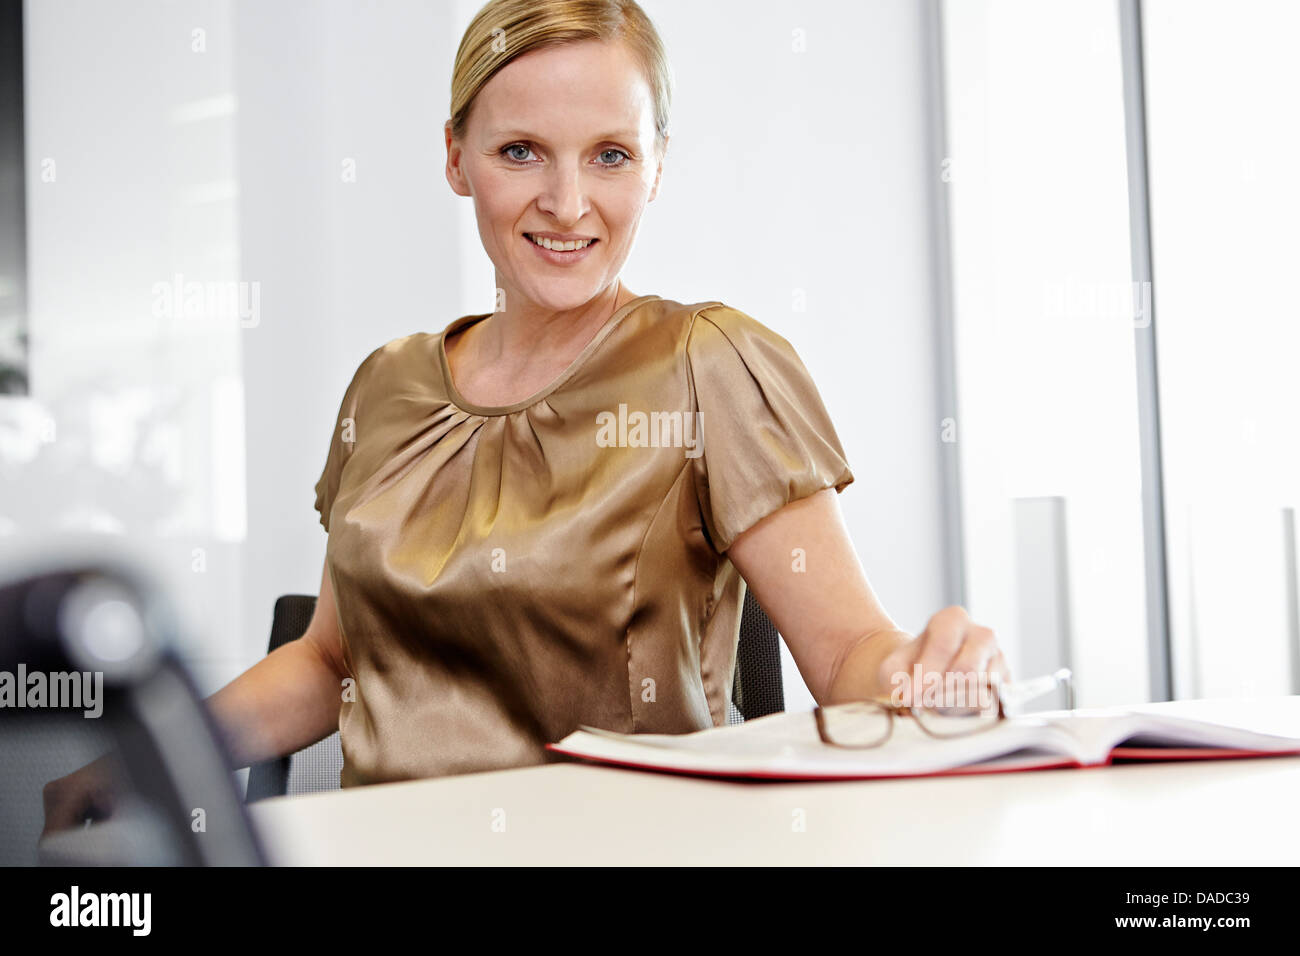 Business woman sitting on office chair, smiling - Stock Image